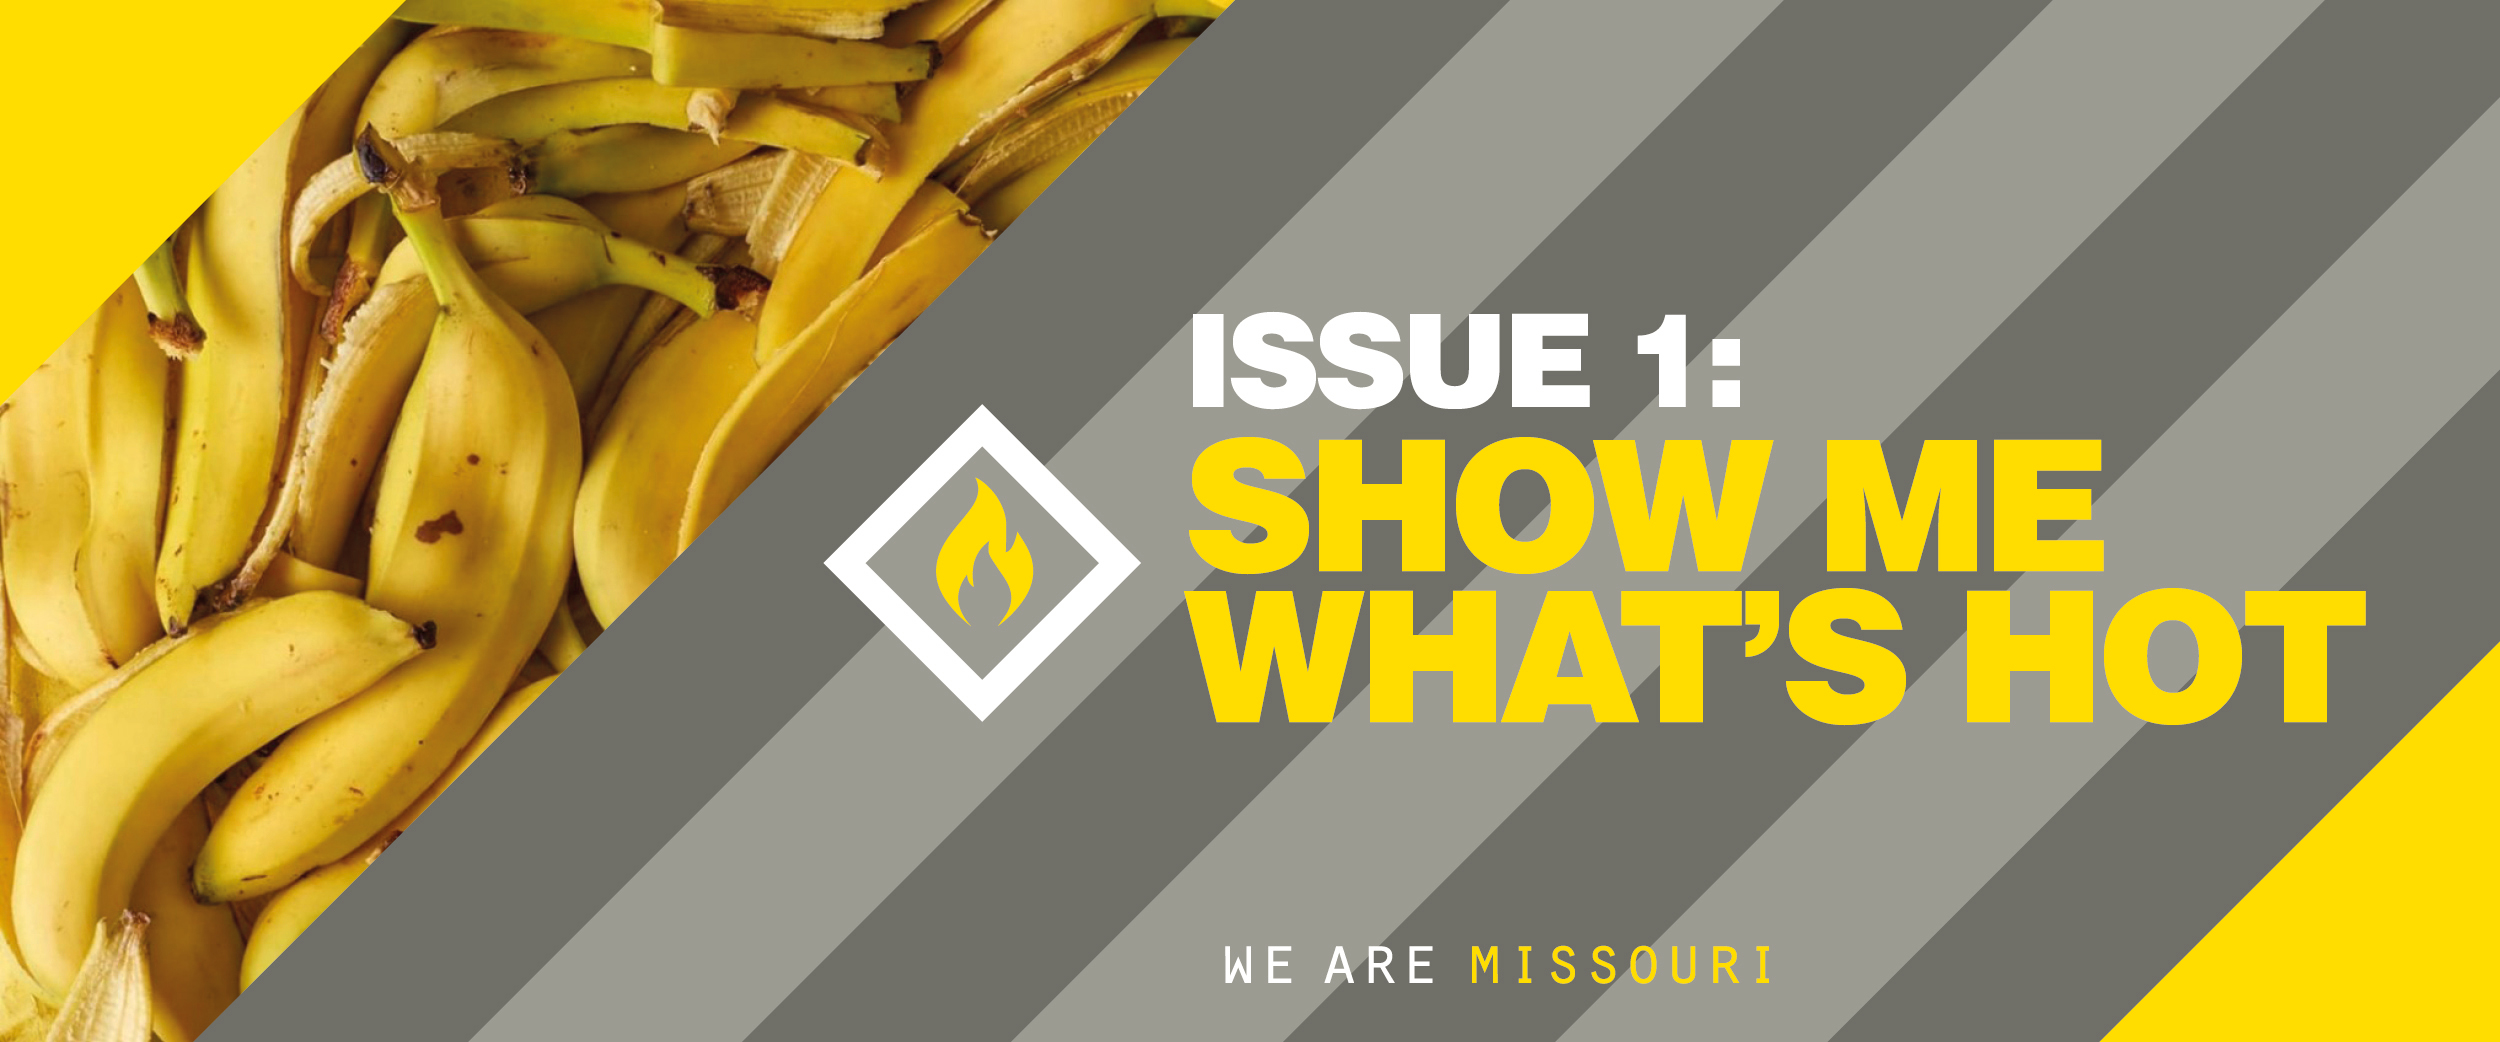 Issue 1: SHOW ME WHAT'S HOT